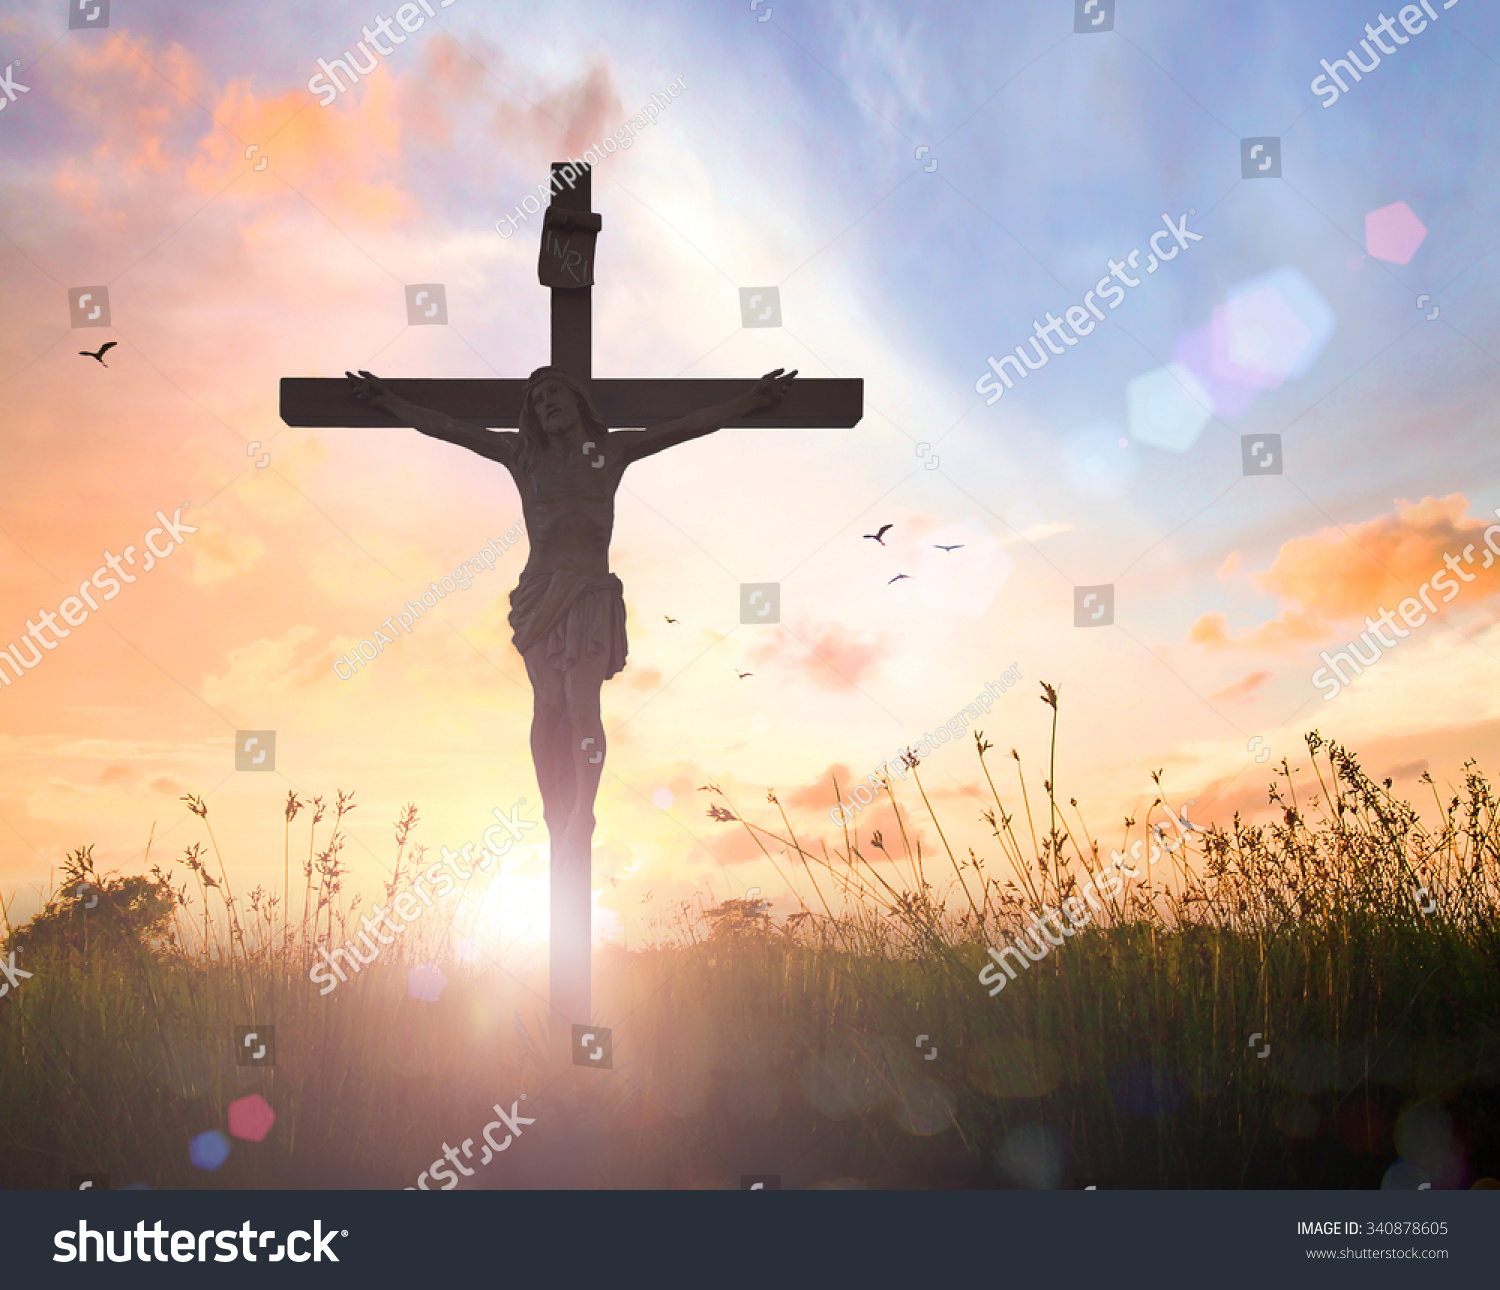 Christian background concept silhouette jesus christ christian background concept silhouette jesus christ and cross over meadow sunset voltagebd Images